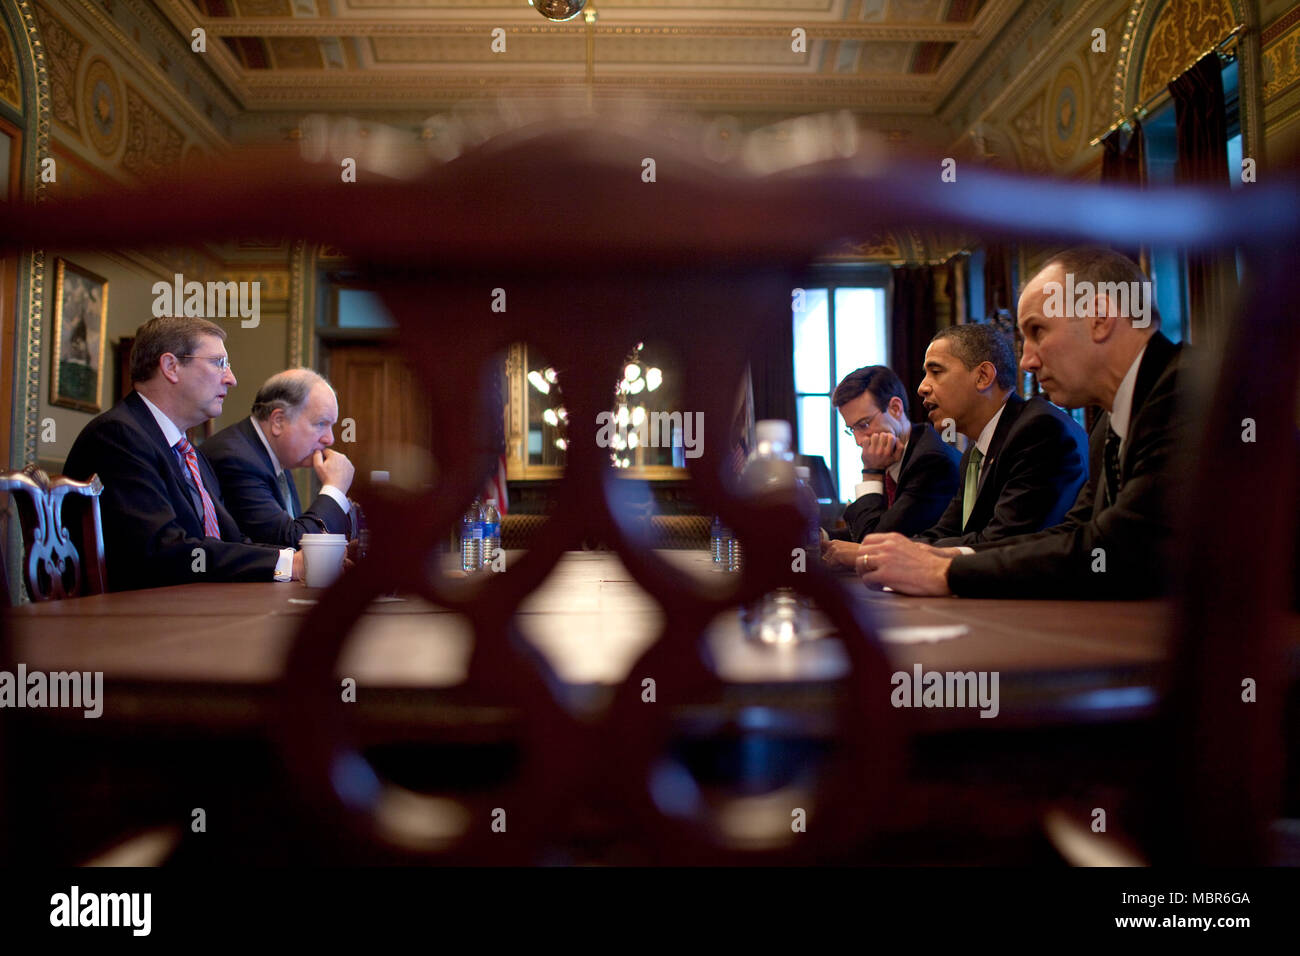 President Barack Obama meets with Senate Budget Committee Chairman Sen. Kent Conrad, D-N.D., House Budget Committee Chairman Rep. John Spratt Jr, D-S.C, OMB Director Peter Orszag, and Assistant to the President for Legislative Affairs Phil Schiliro 3/17/09.  Official White House Photo by Pete Souza. - Stock Image